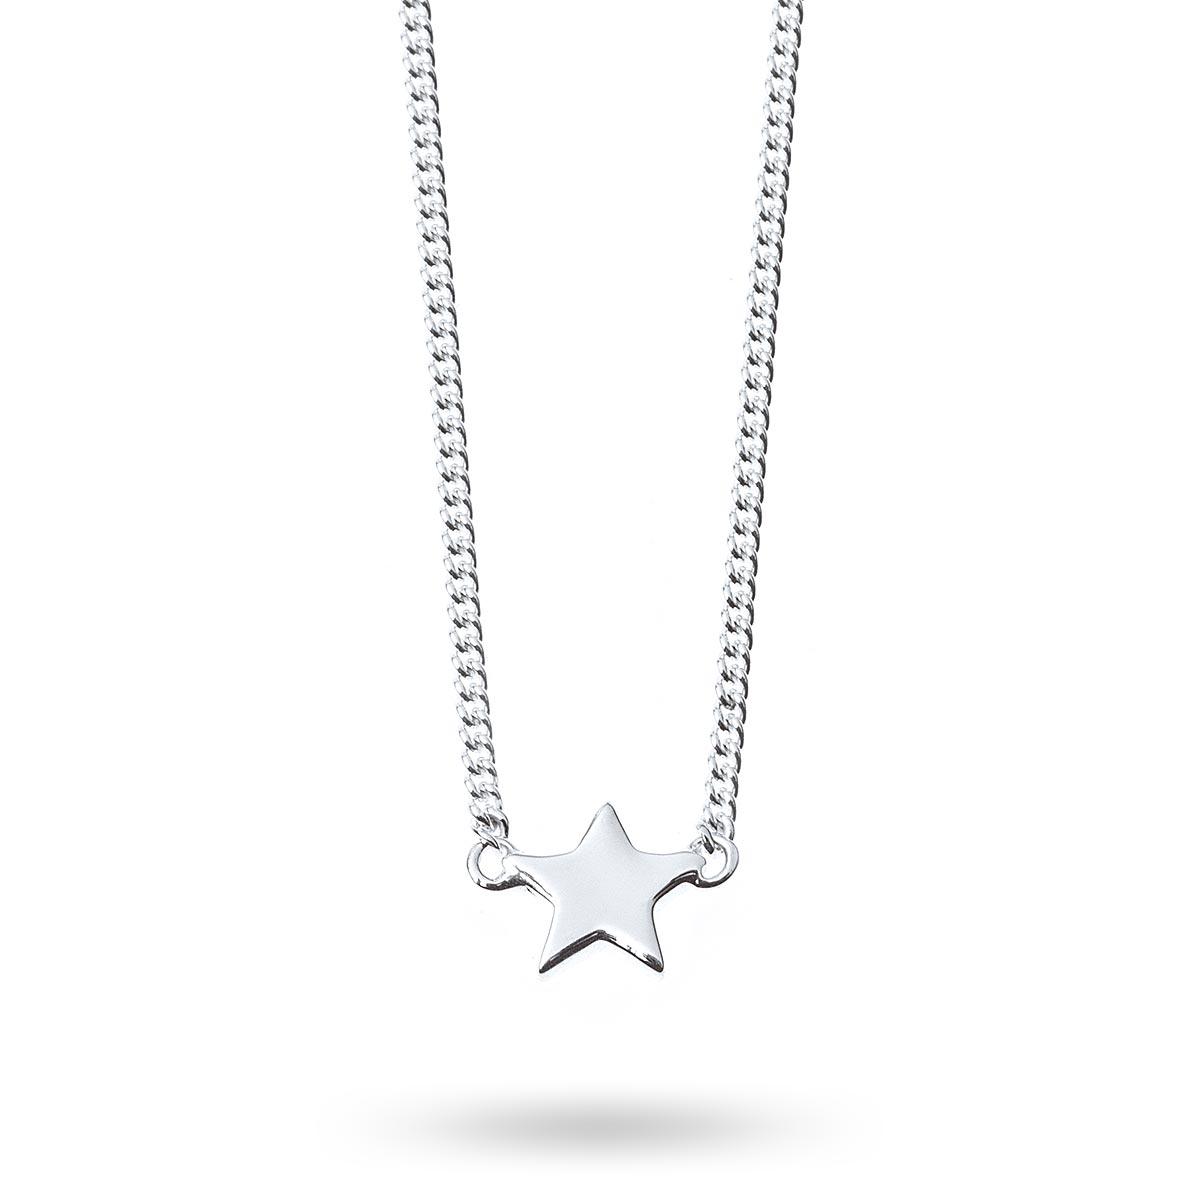 isabel-lennse-star-chain-halsband-silver-1